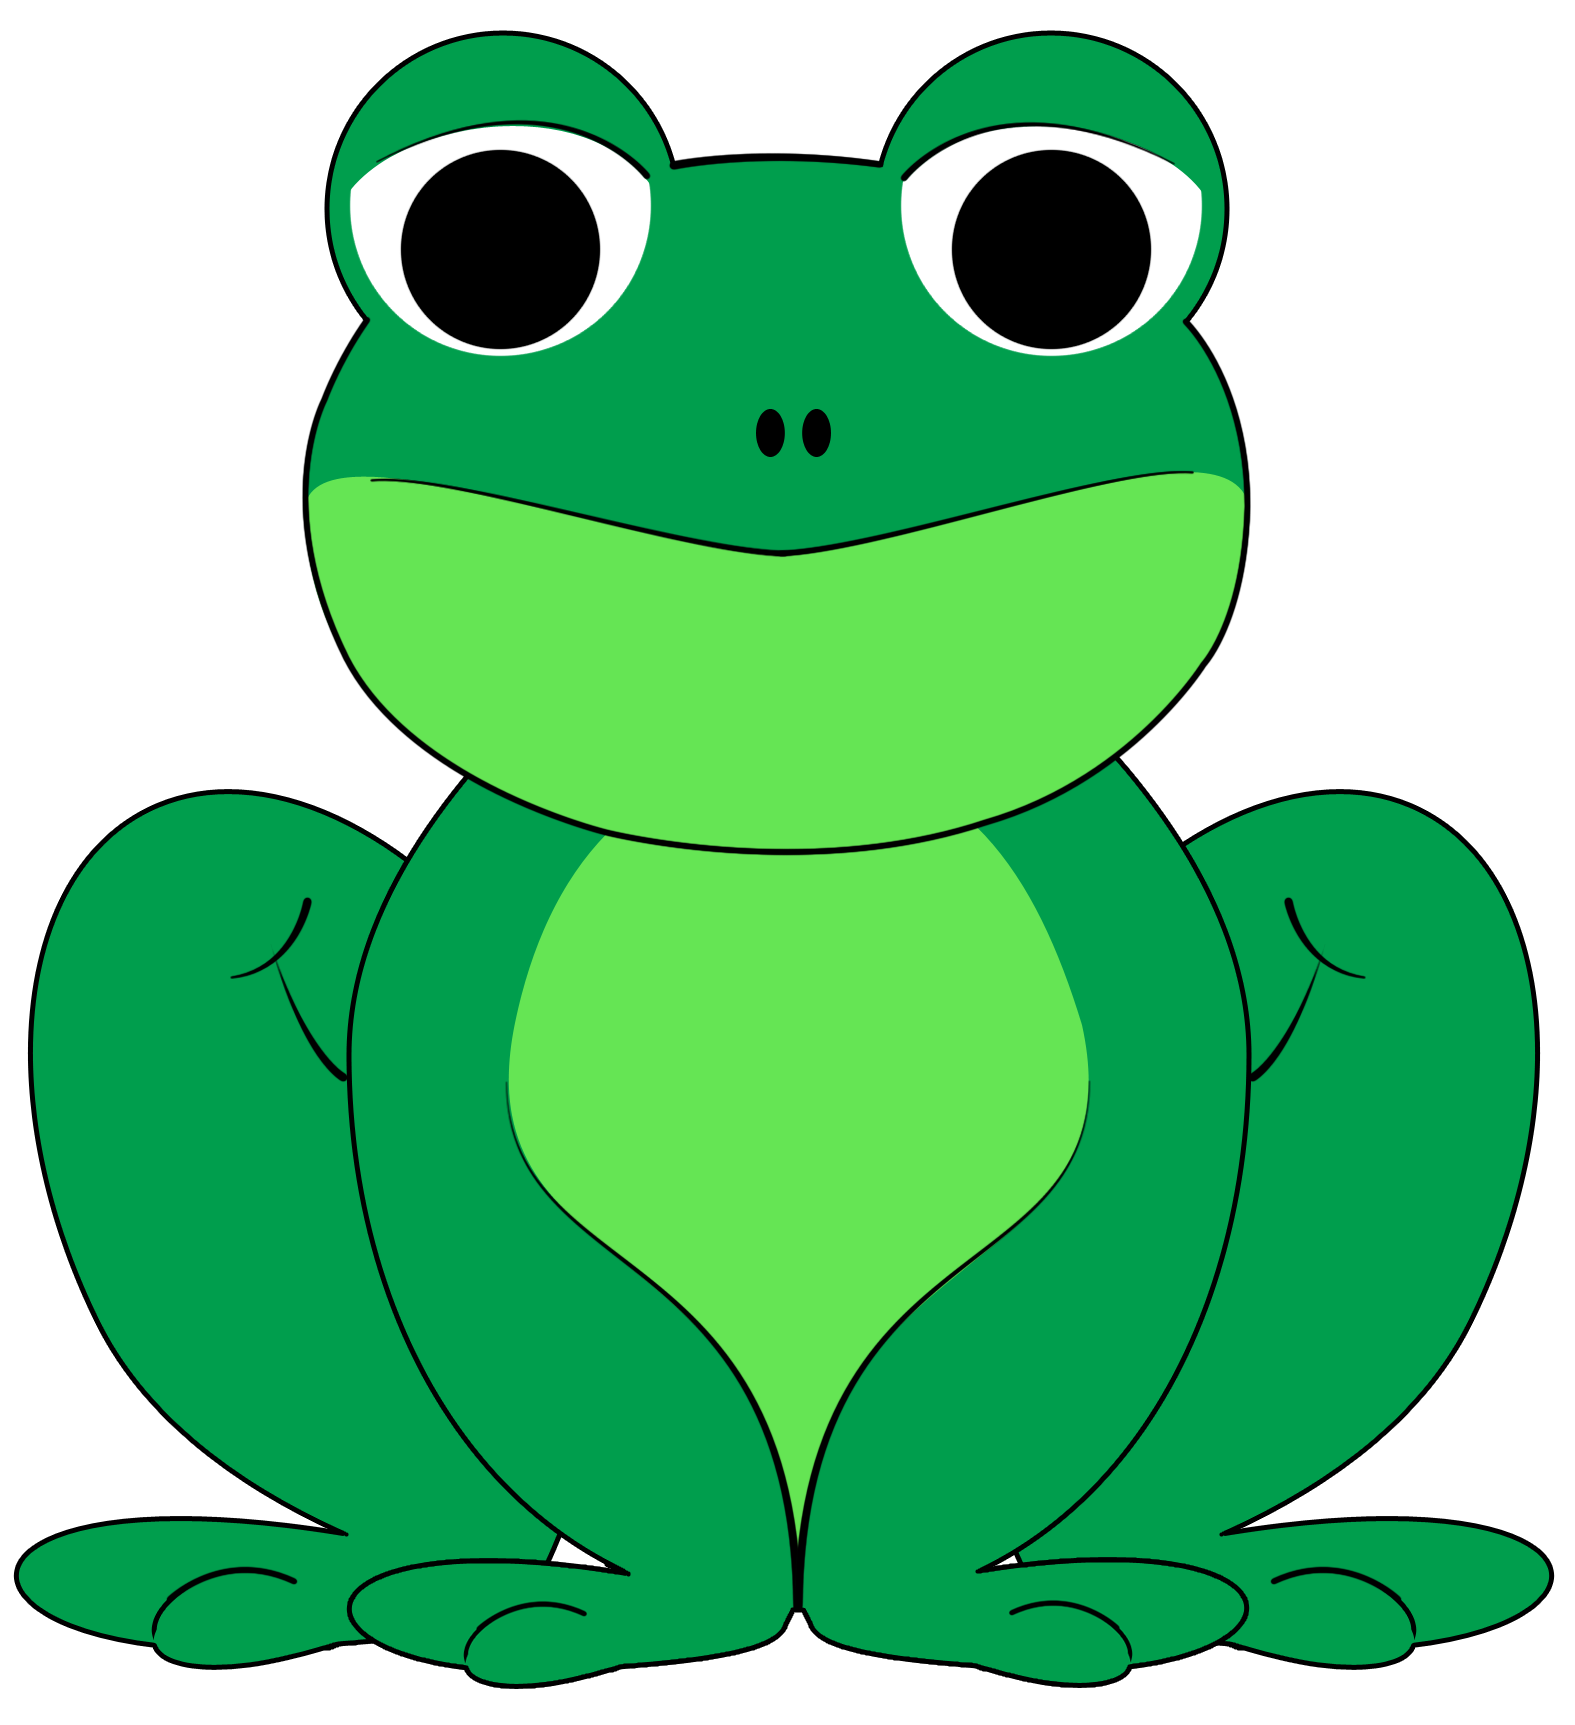 Image of Cute Frog Clipart #7848, Cartoon Frog Face Clip Art.